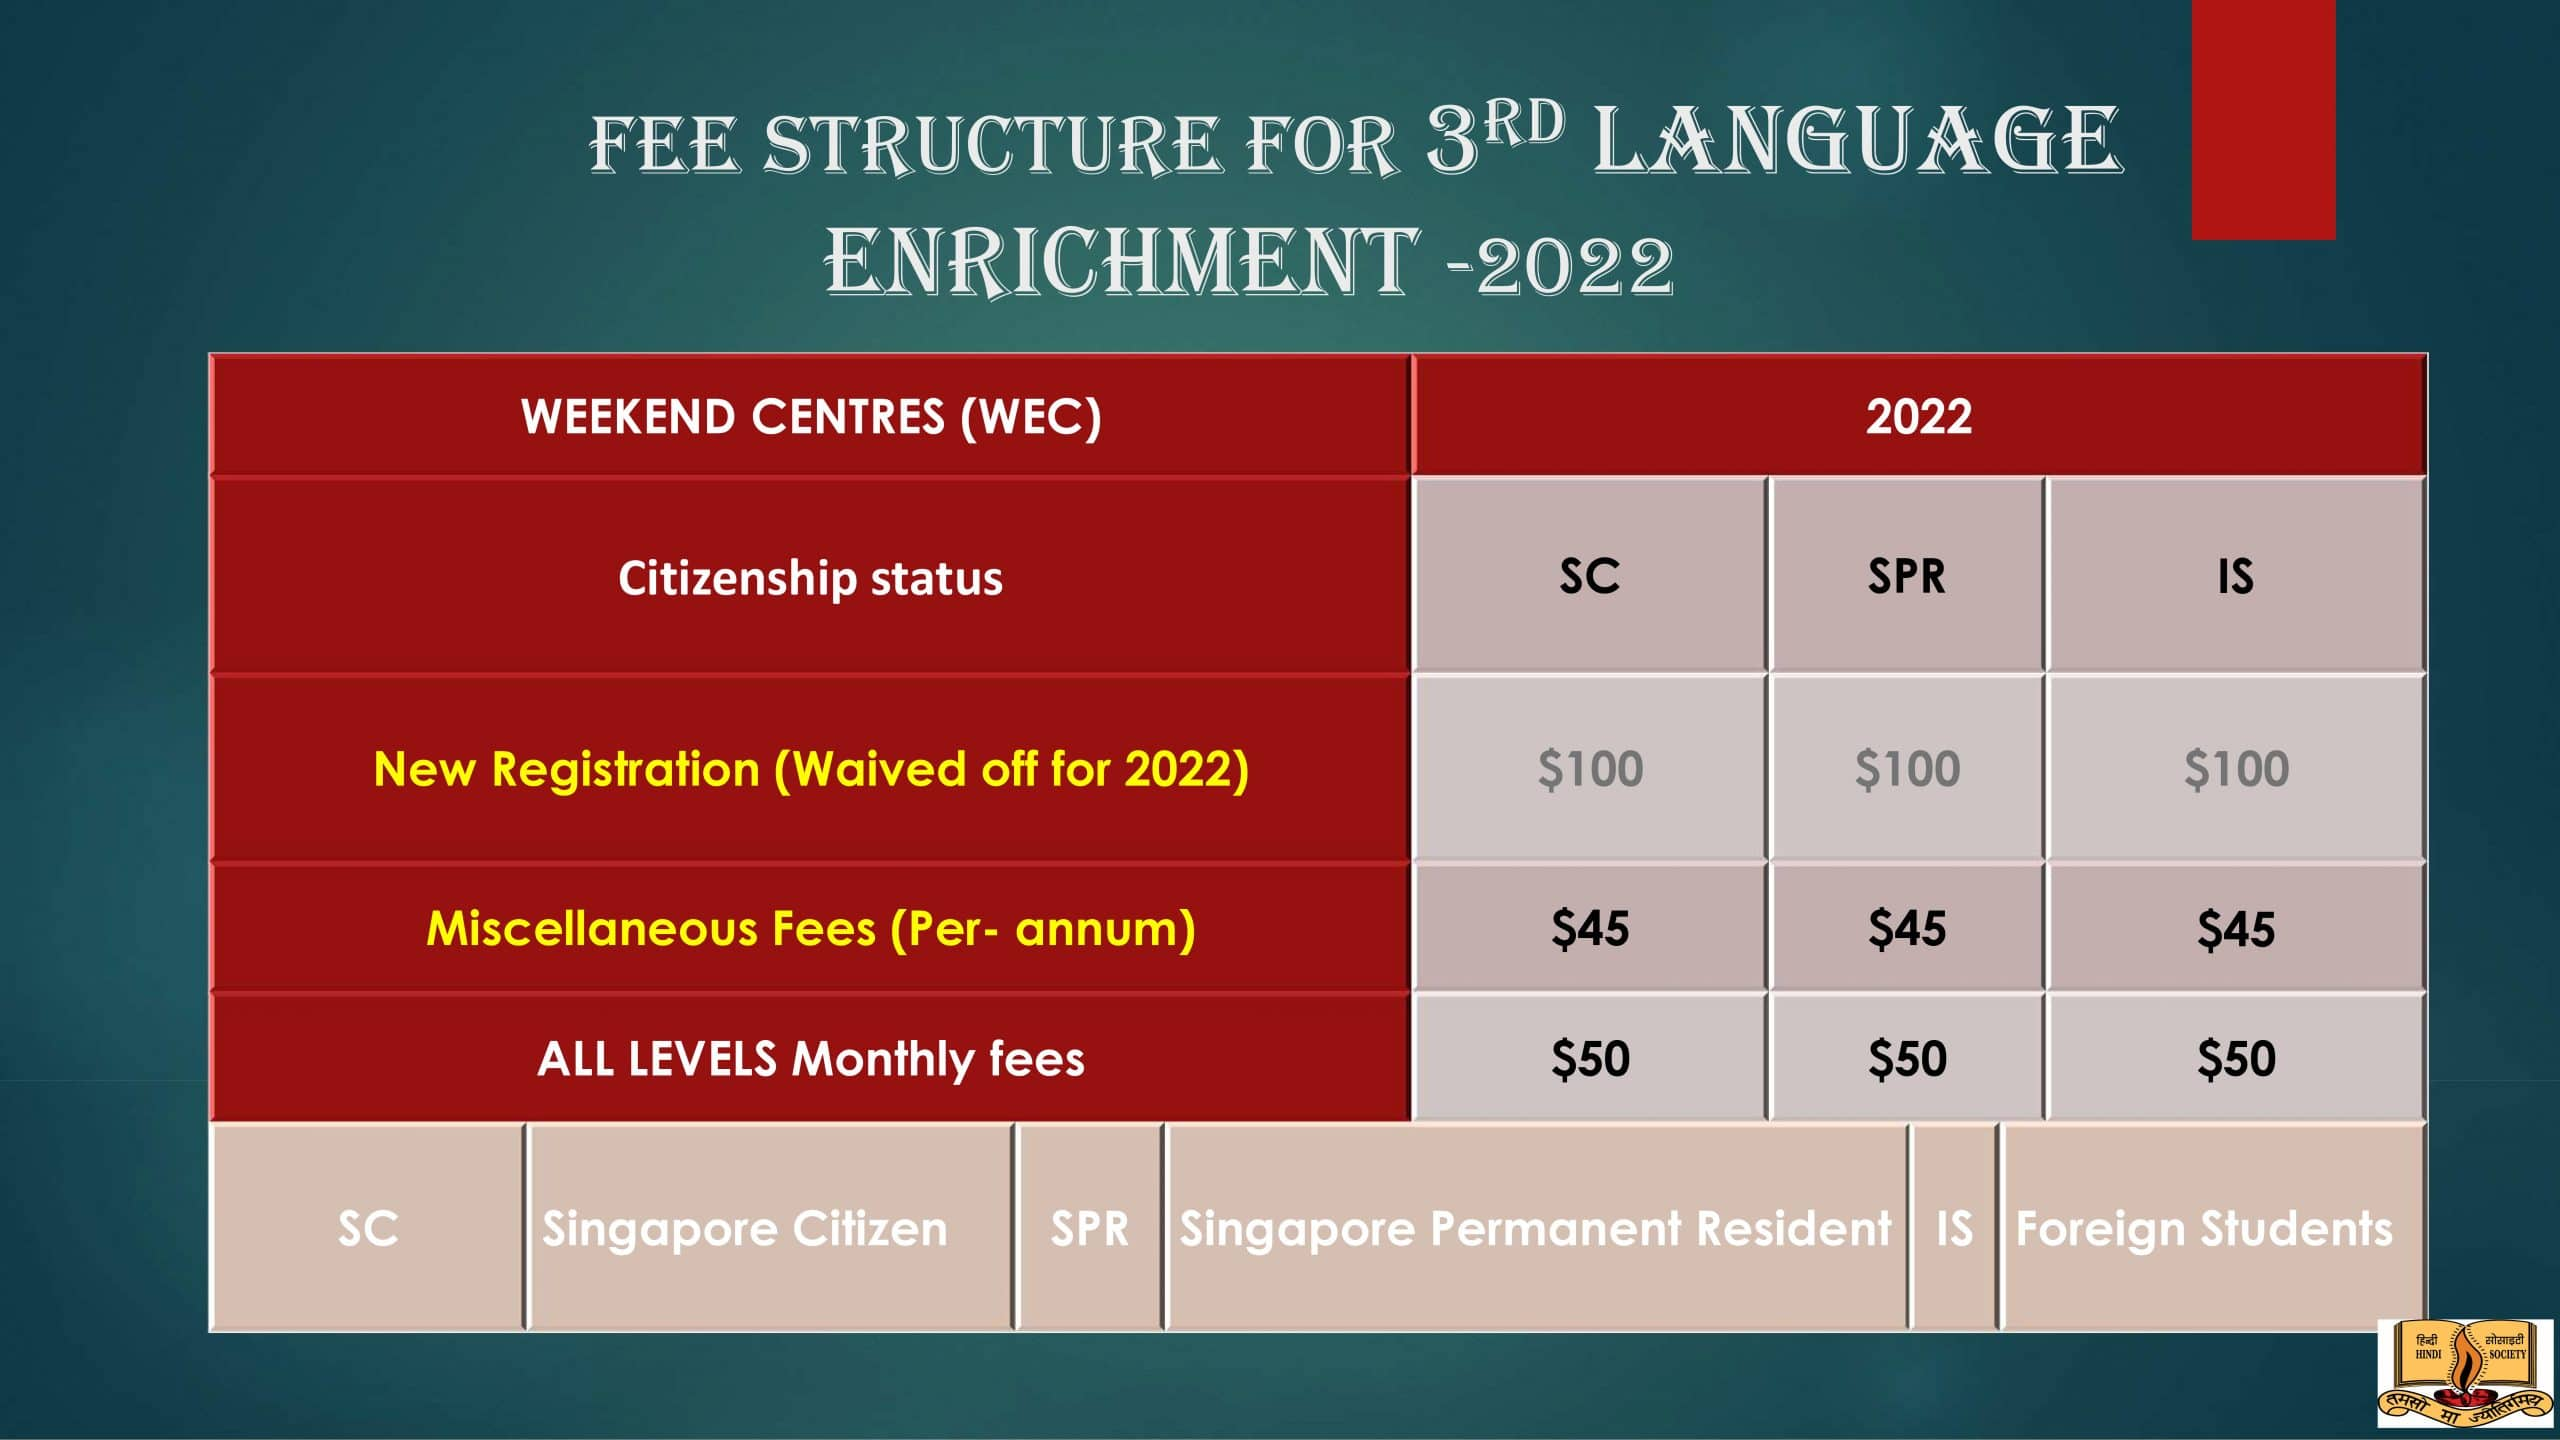 HSS 3rd LANGUAGE FEE STRUCTURE-2022